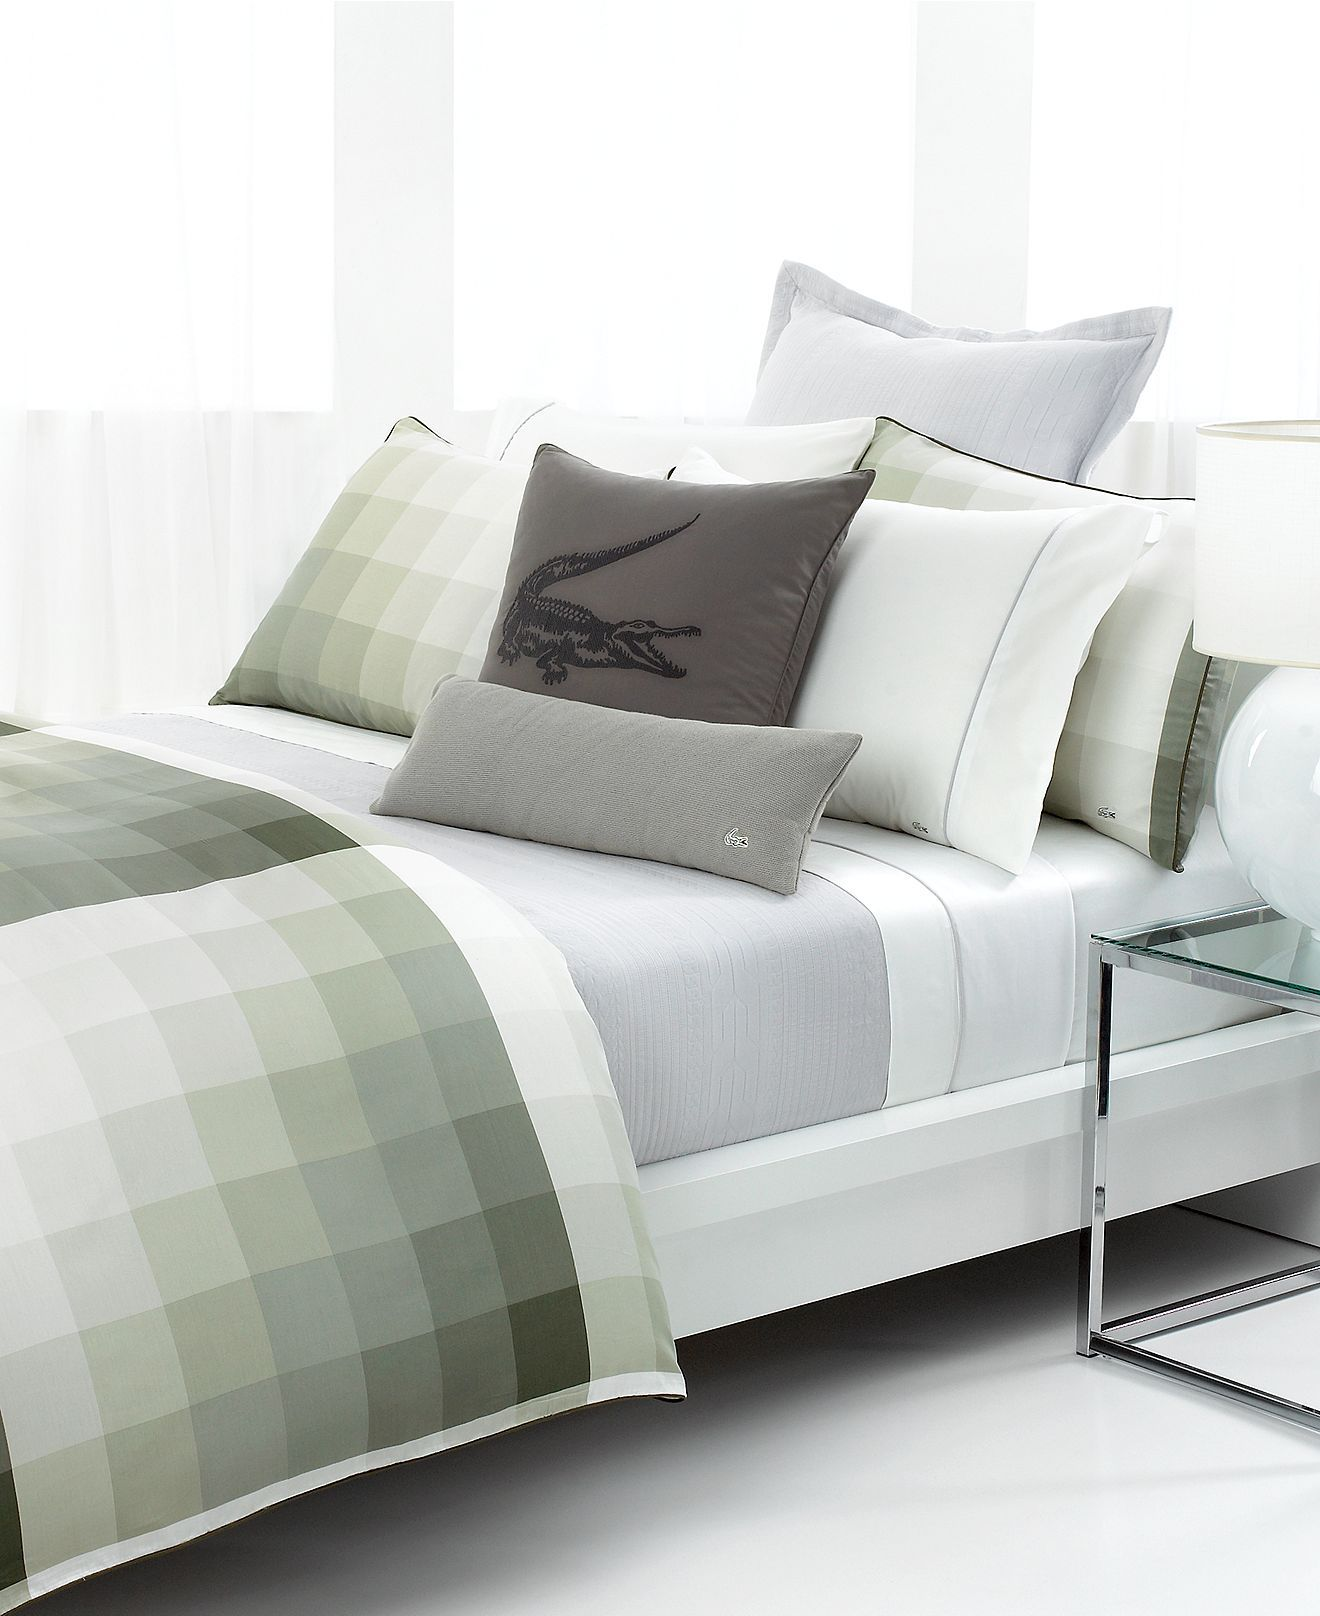 duvet better lacoste cover love wayfair sets you comforter covers bed ll